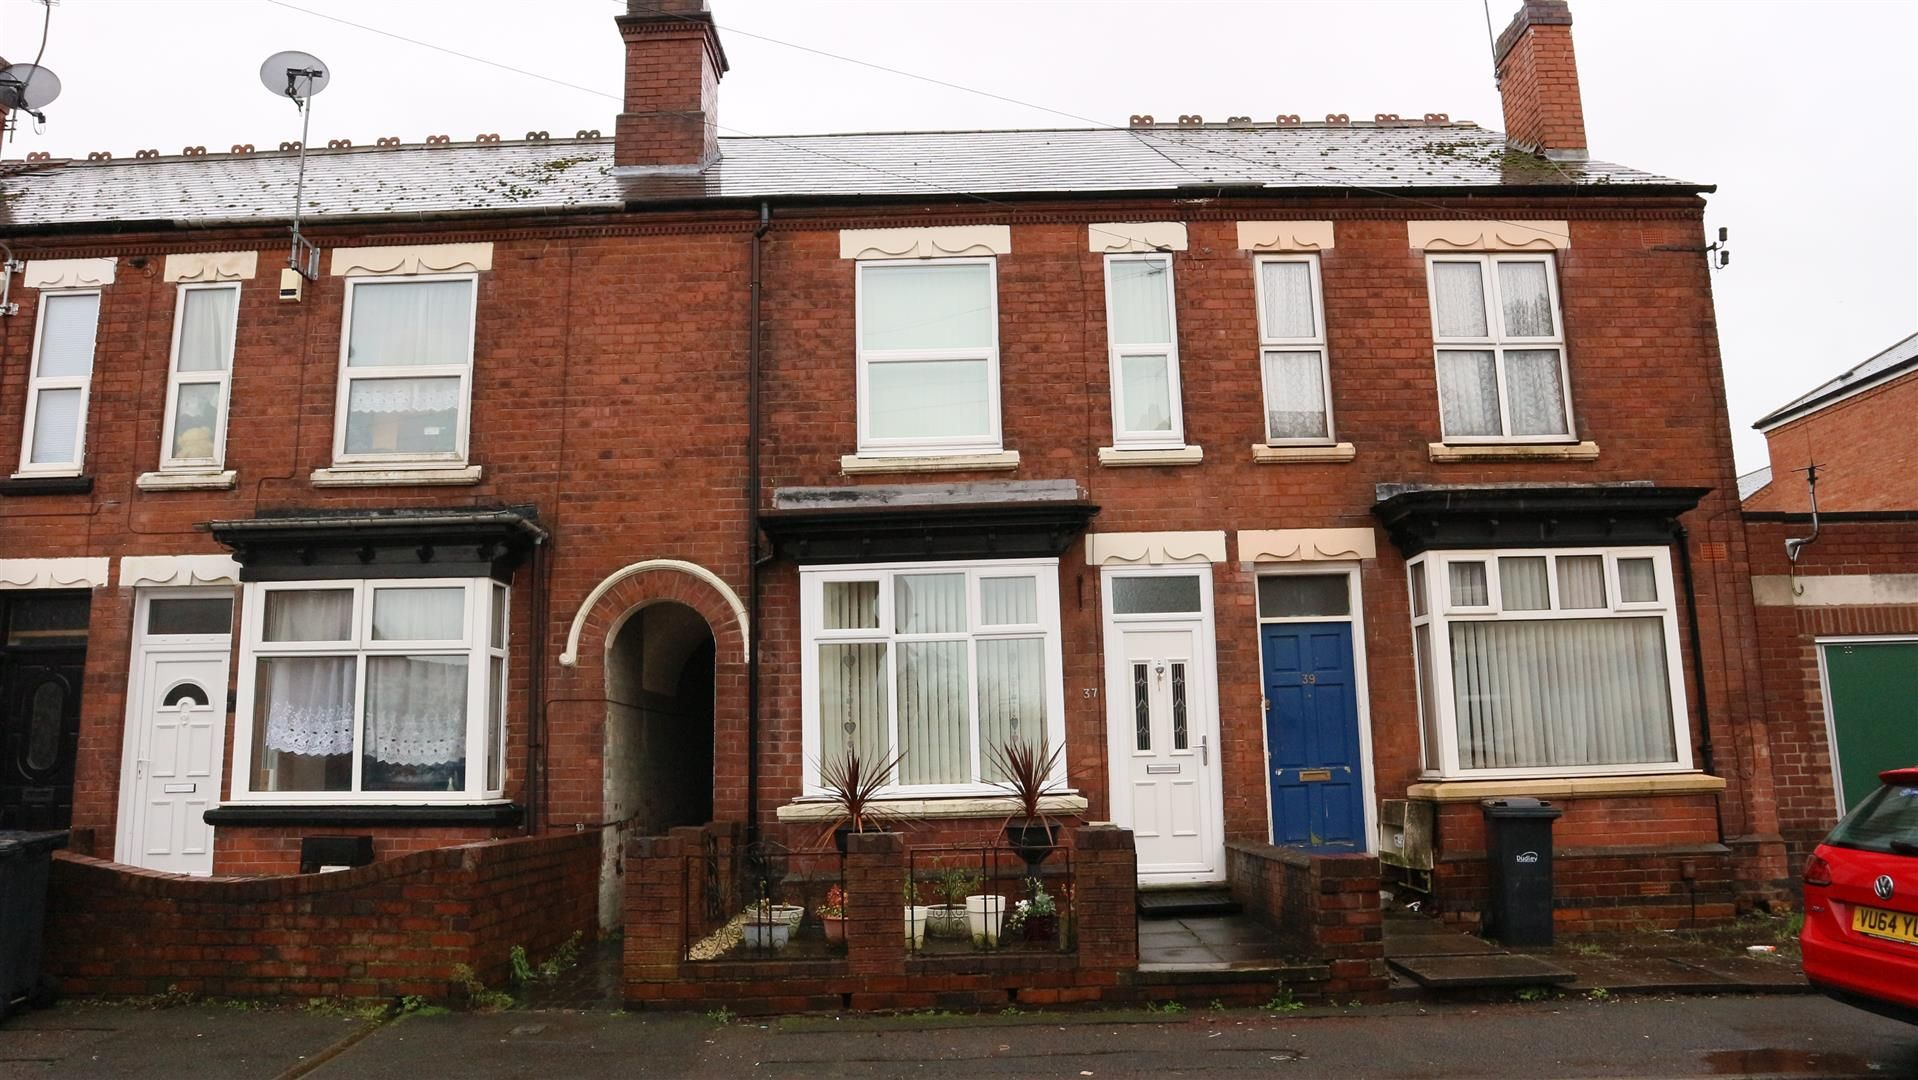 3 bed terraced for sale, DY5